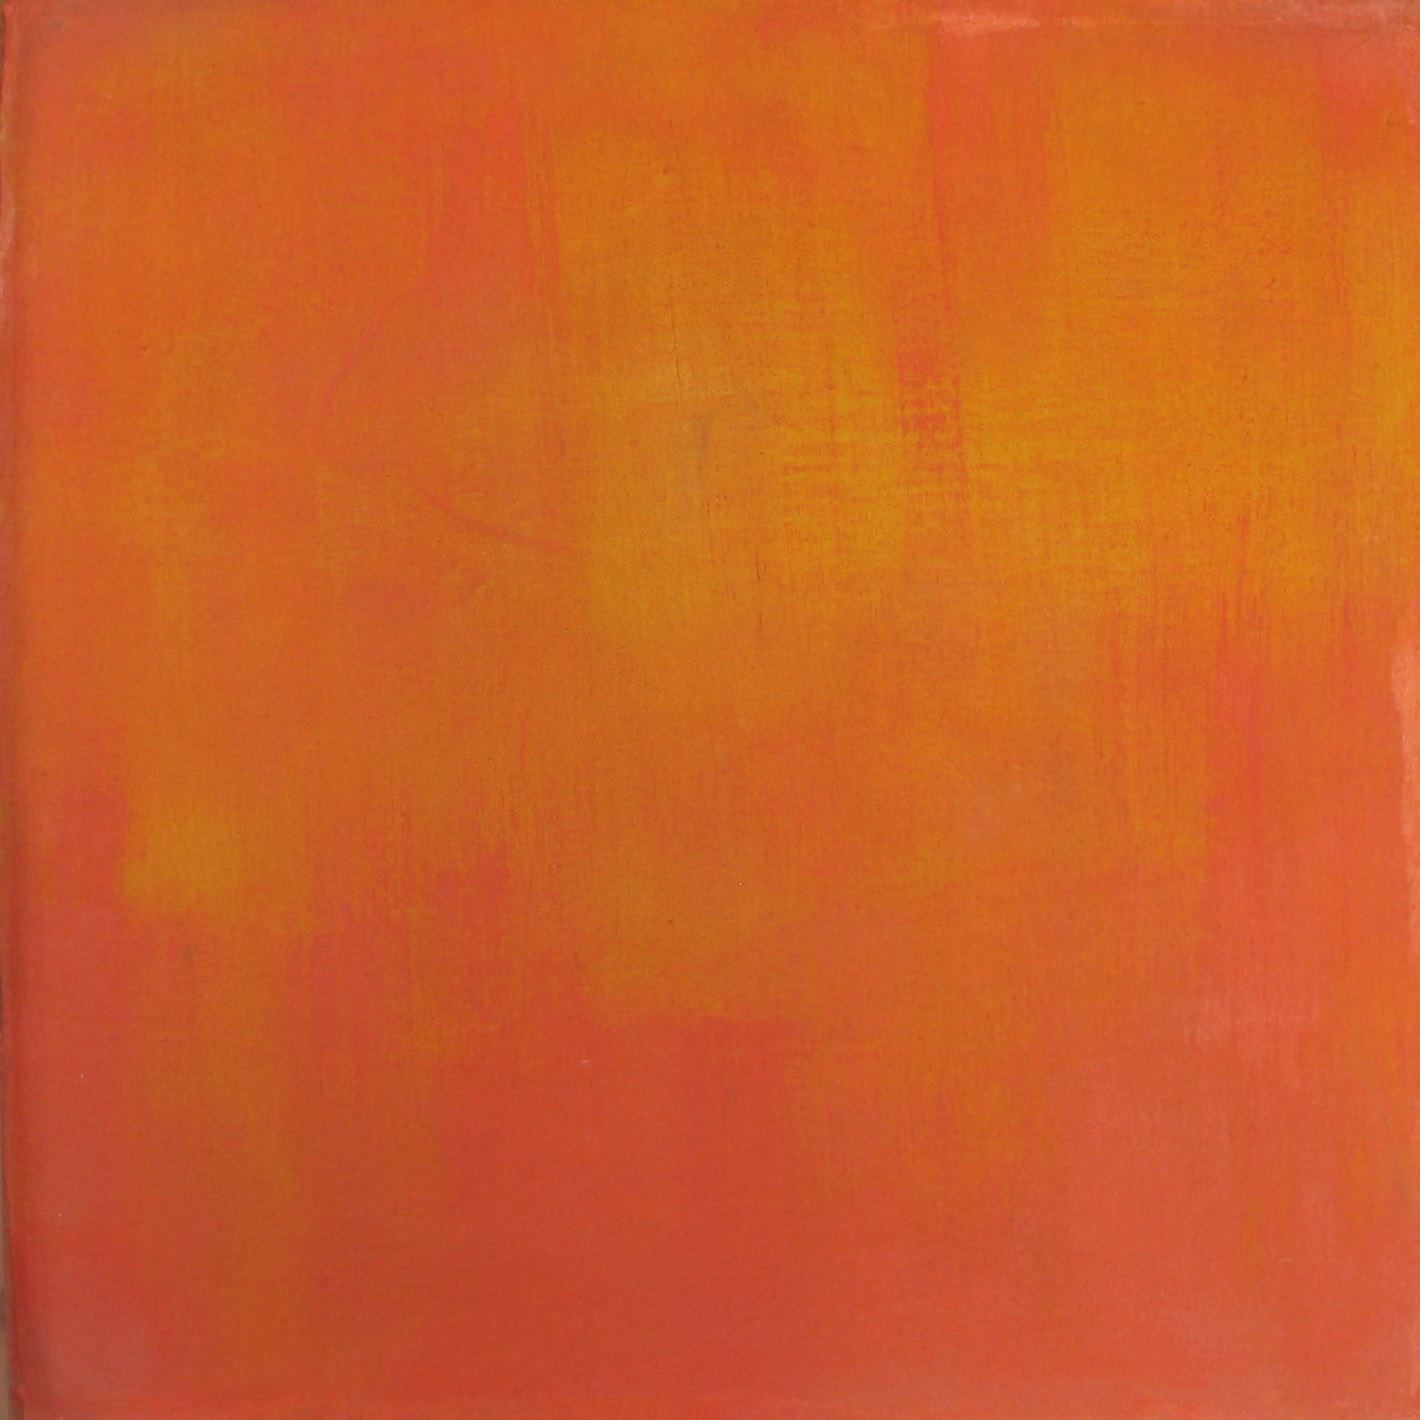 orange brushwork